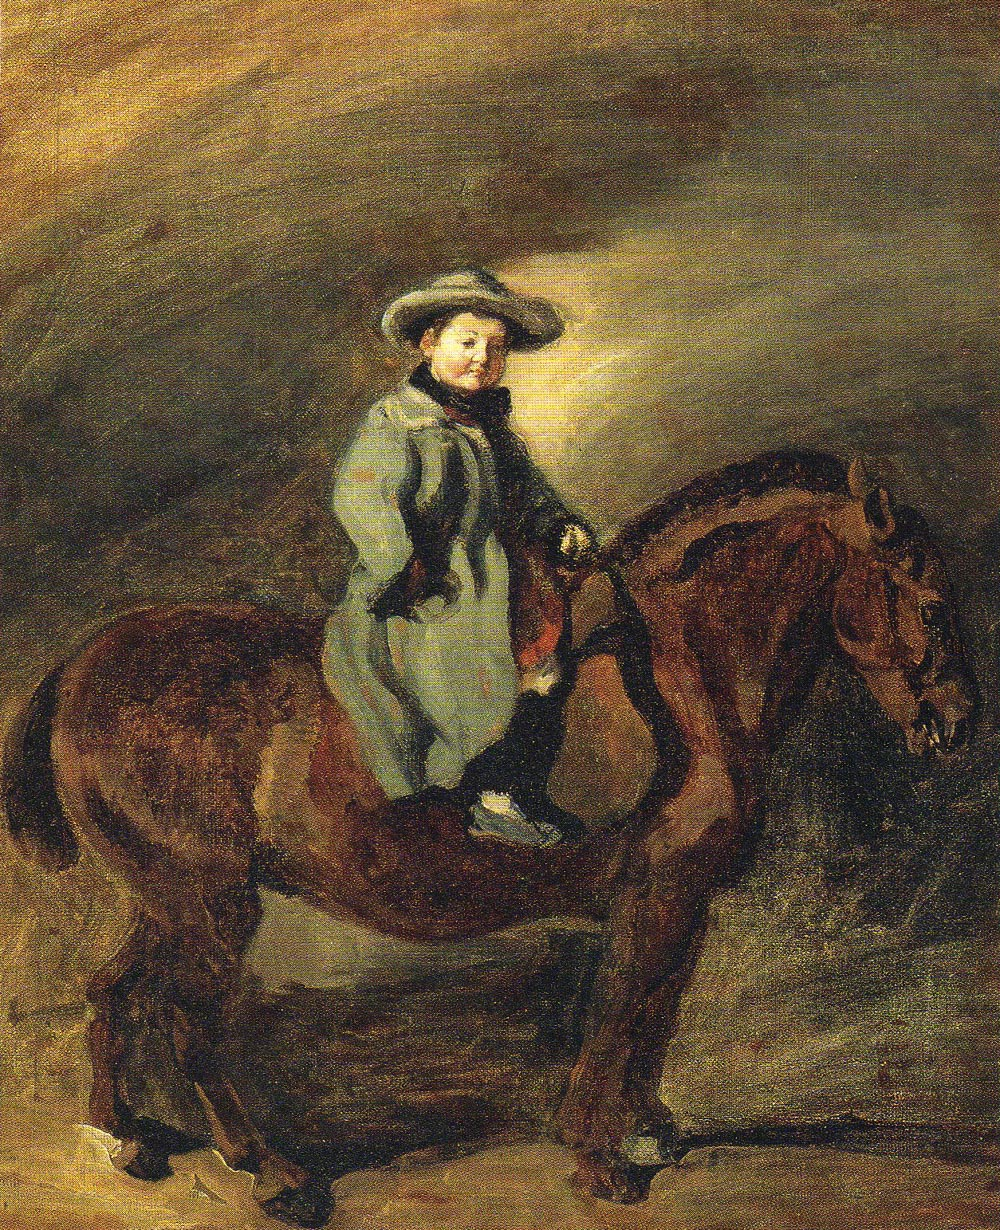 Artist's Son on a Donkey